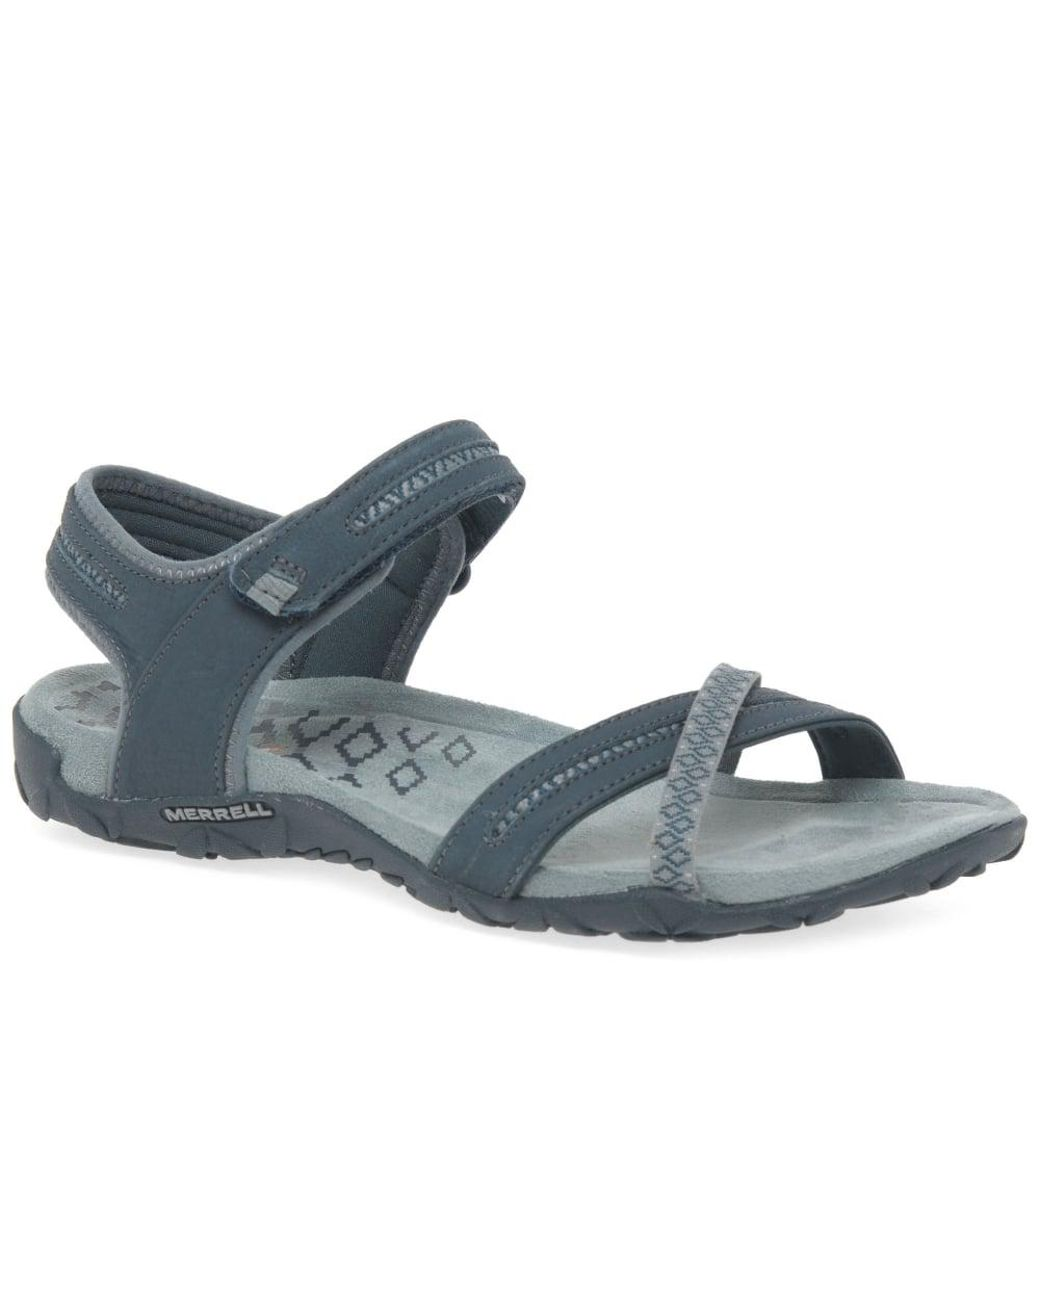 b0b888675bcc Merrell Terran Cross Ii Slate Womens Sandals in Gray - Lyst